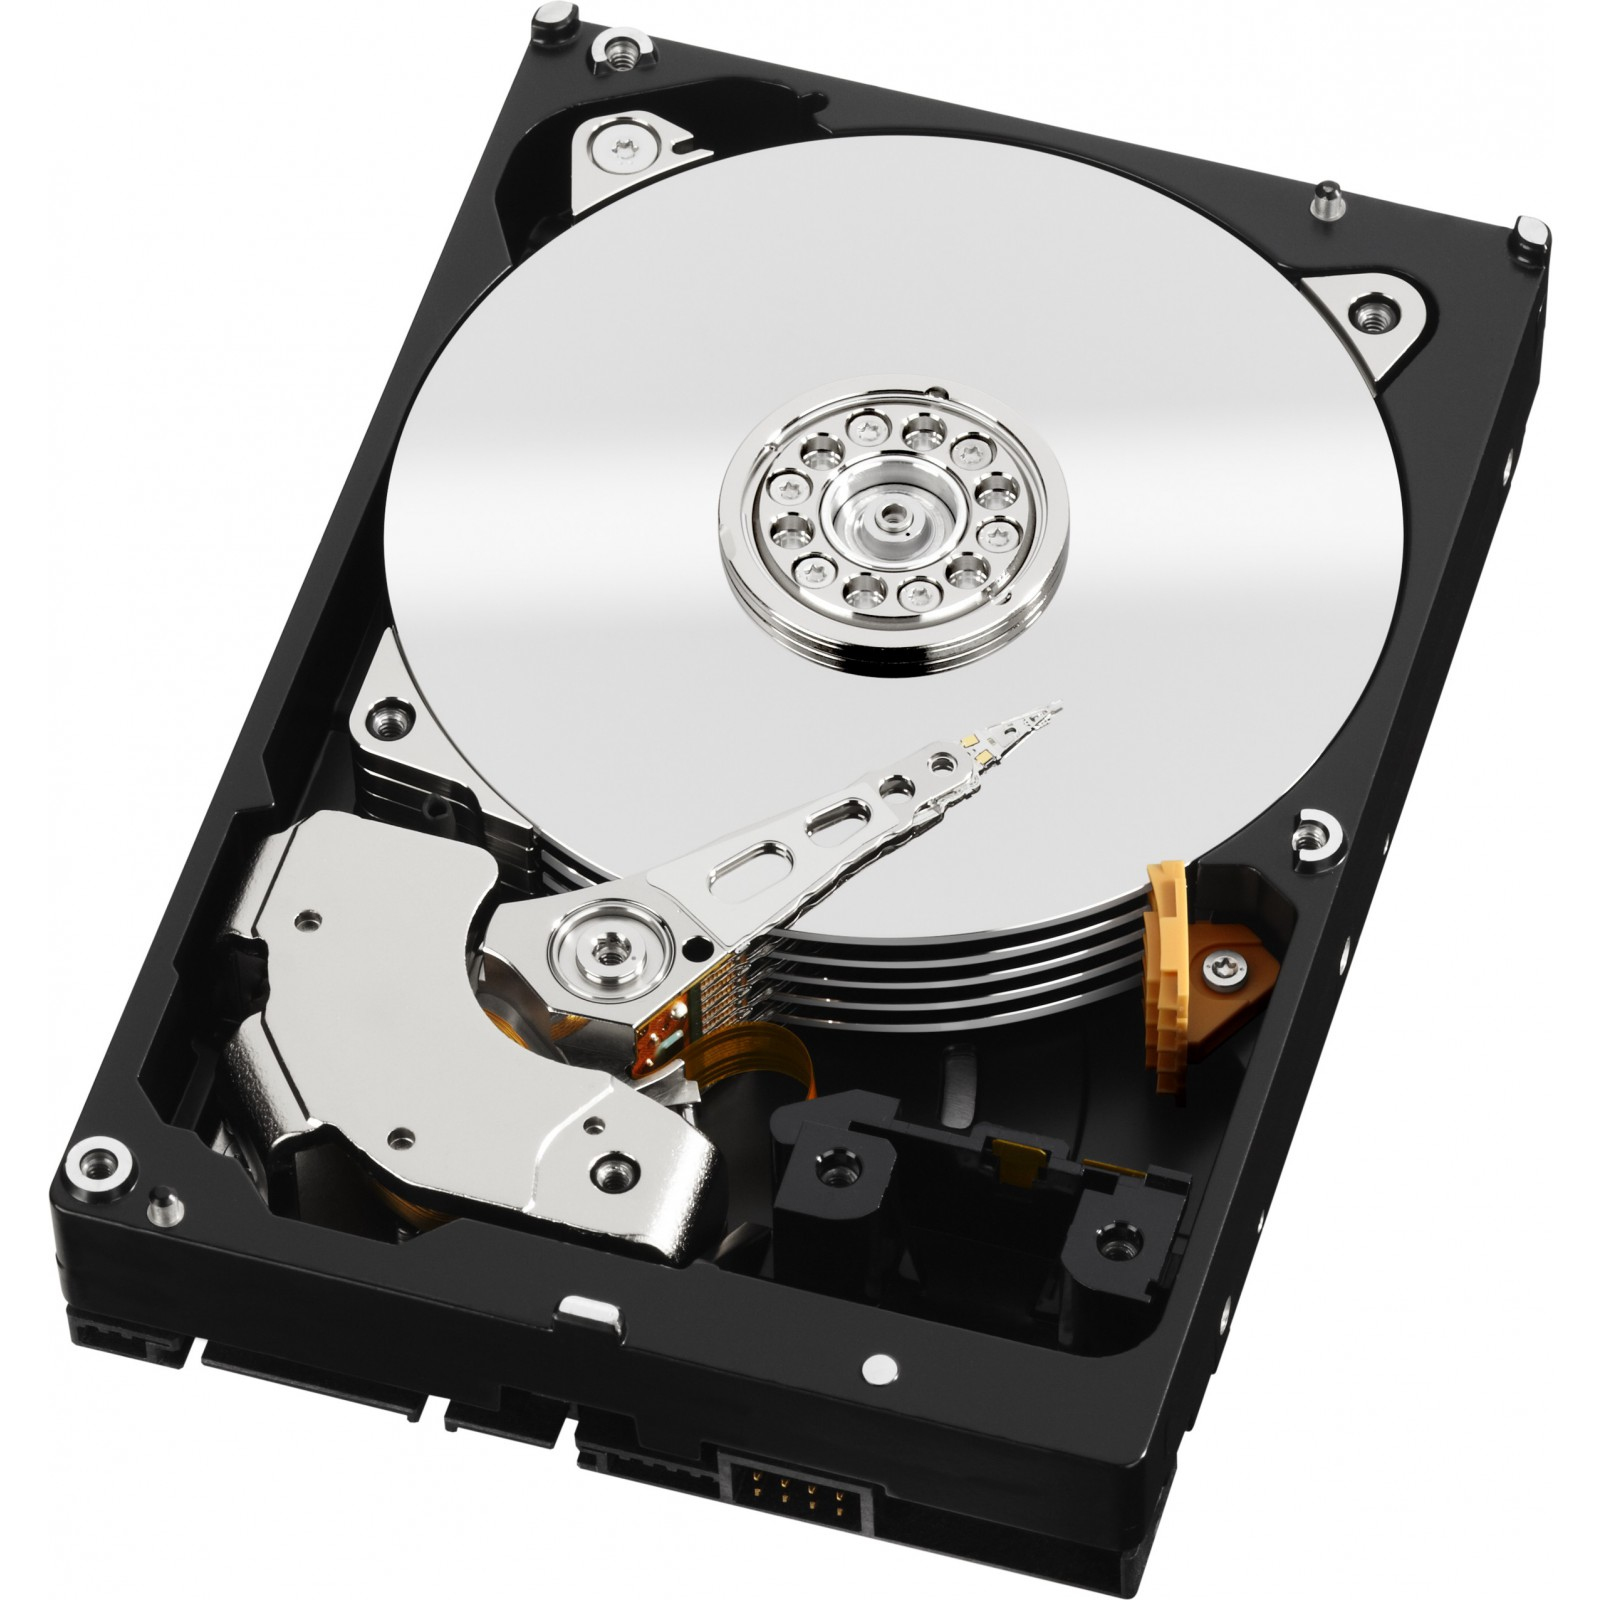 WESTERN DIGITAL RE4 1TB 1000GB SERIAL ATA II INTERNAL HARD DRIVE REFURBISHED